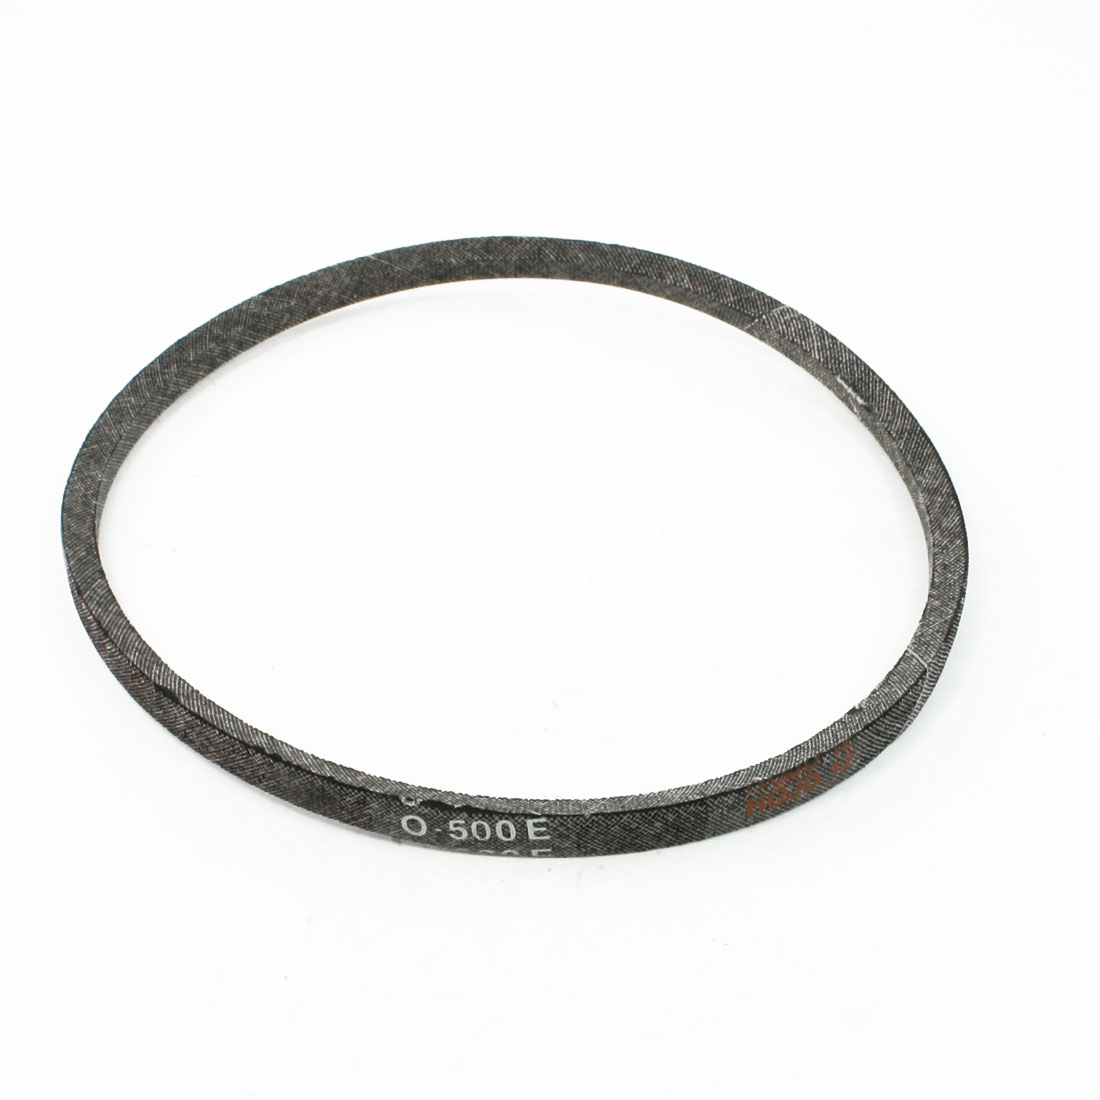 "Washing Machine Motor V Belt 10mm Outer Width 50cm 19 11/16"" Inner Girth"